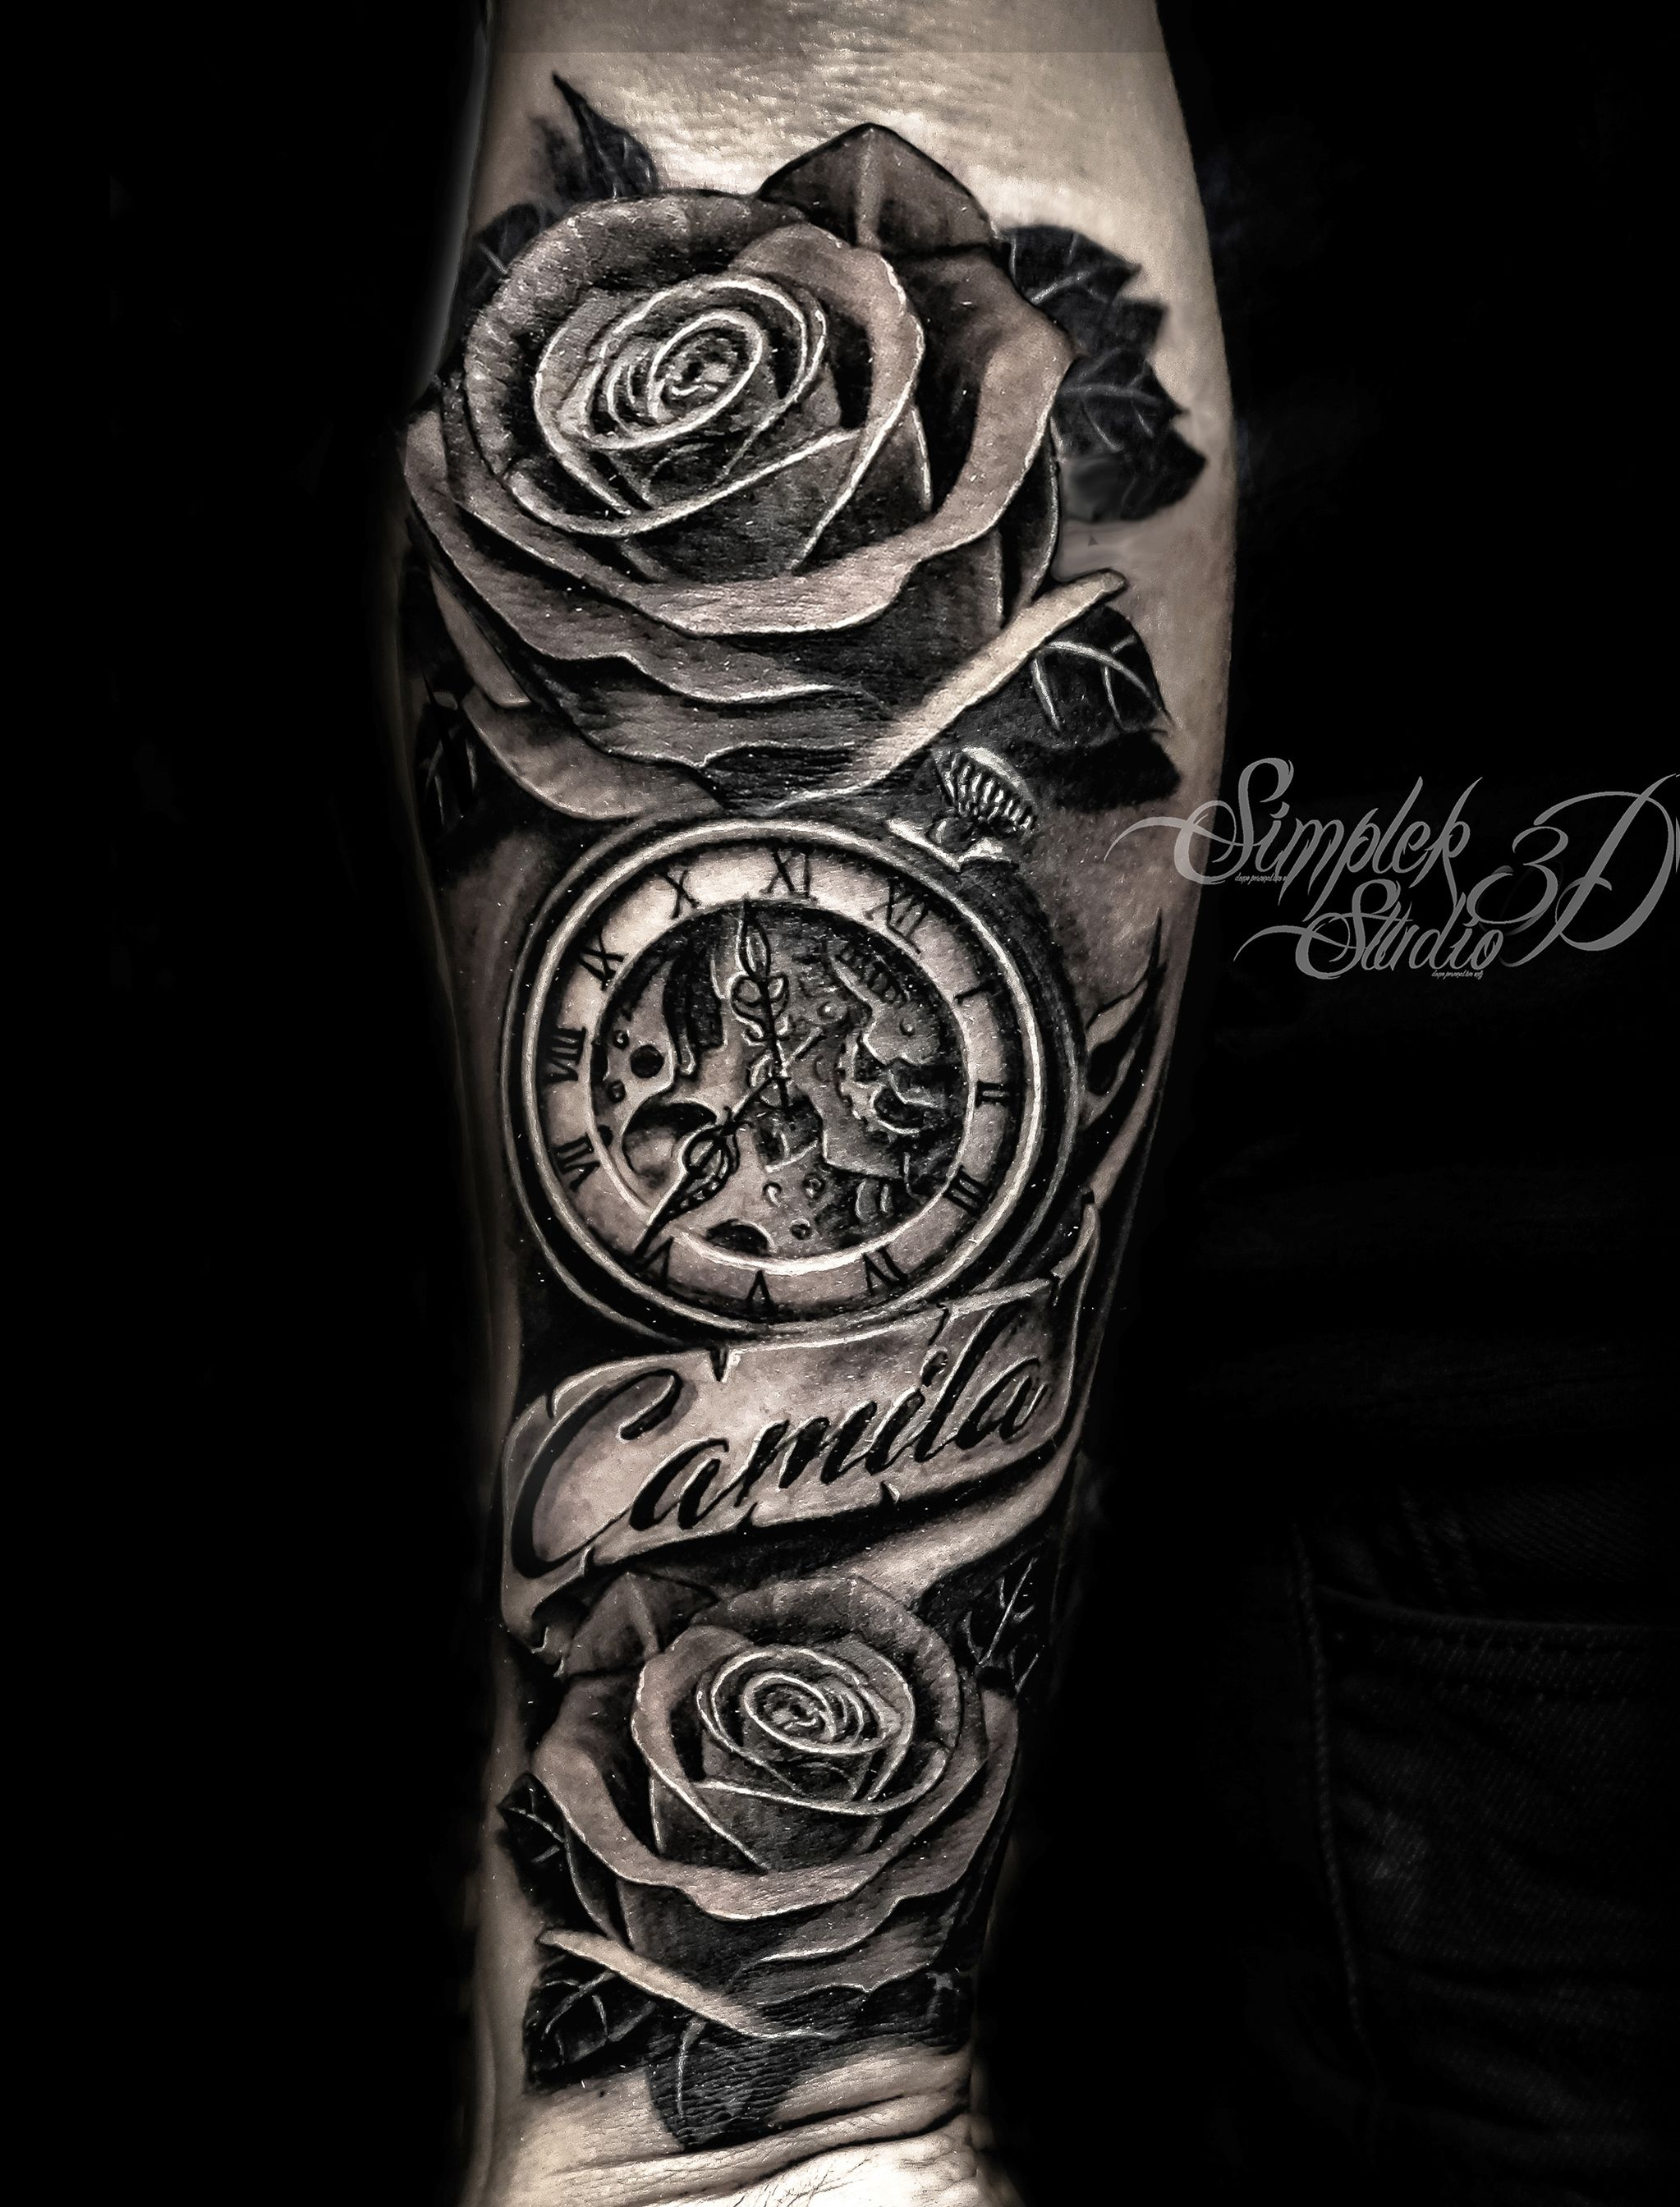 Black and grey tattoo i completed in 1 session i work in